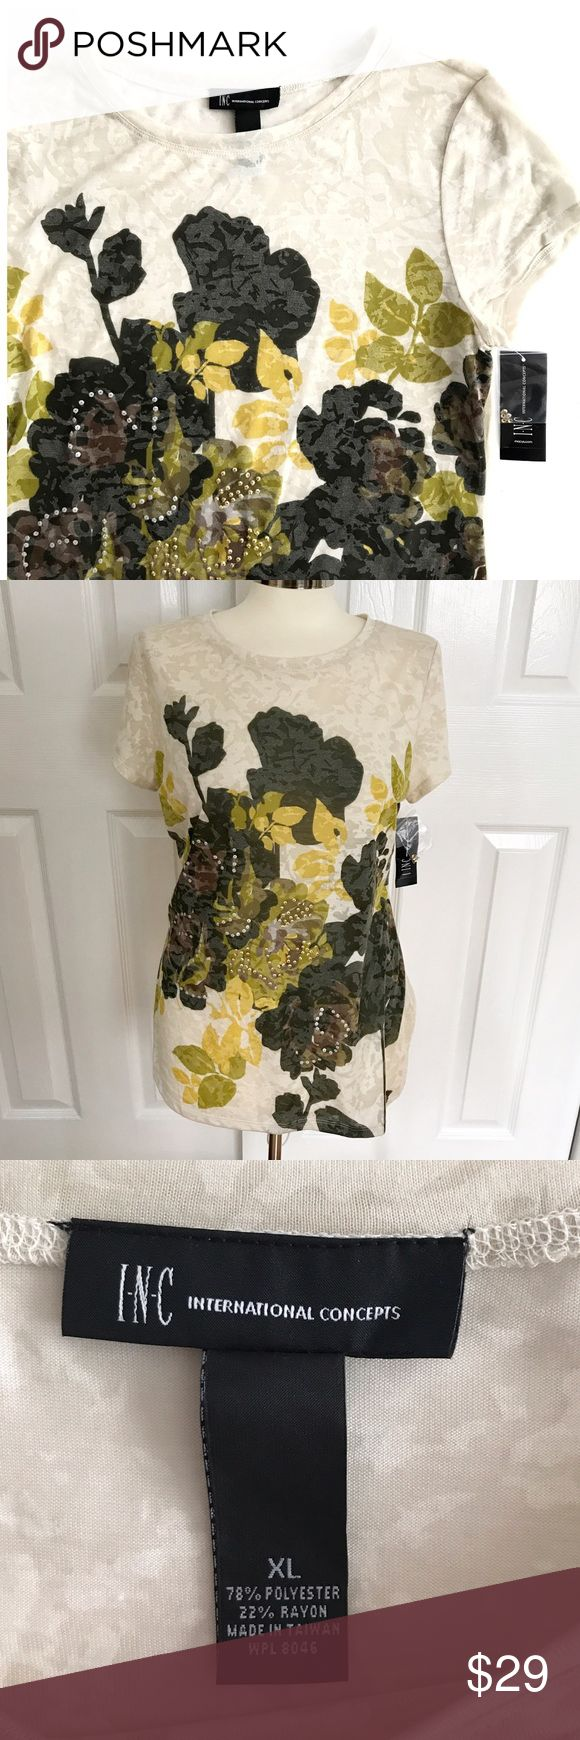 NWT INC Cream Shortsleeve Tshirt Floral design olive green, brown, lighter green and mustard yellow color with some rhinestones. Soft feel, cream, beige tee, sheer. Size extra large, fitted. New with tags. INC brand. 78% polyester 22% rayon. INC International Concepts Tops